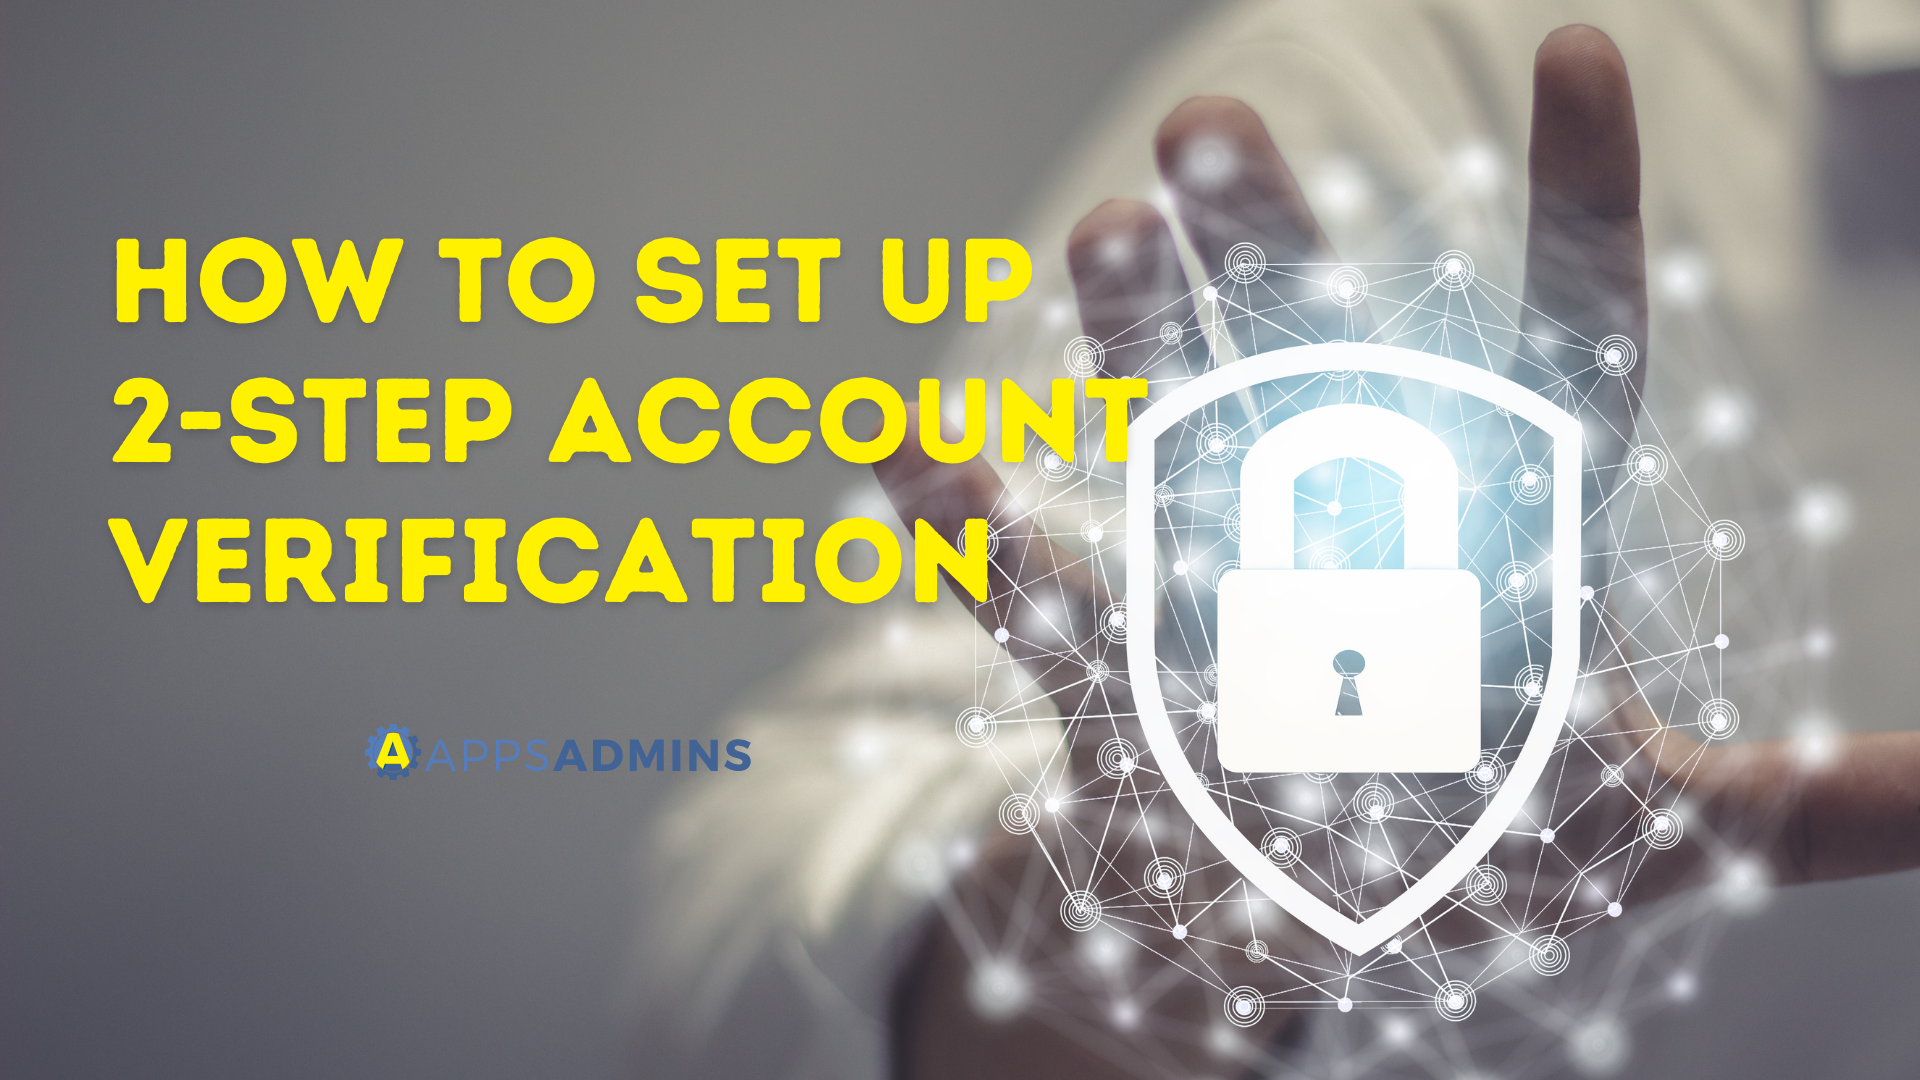 How to set up 2-step account verification